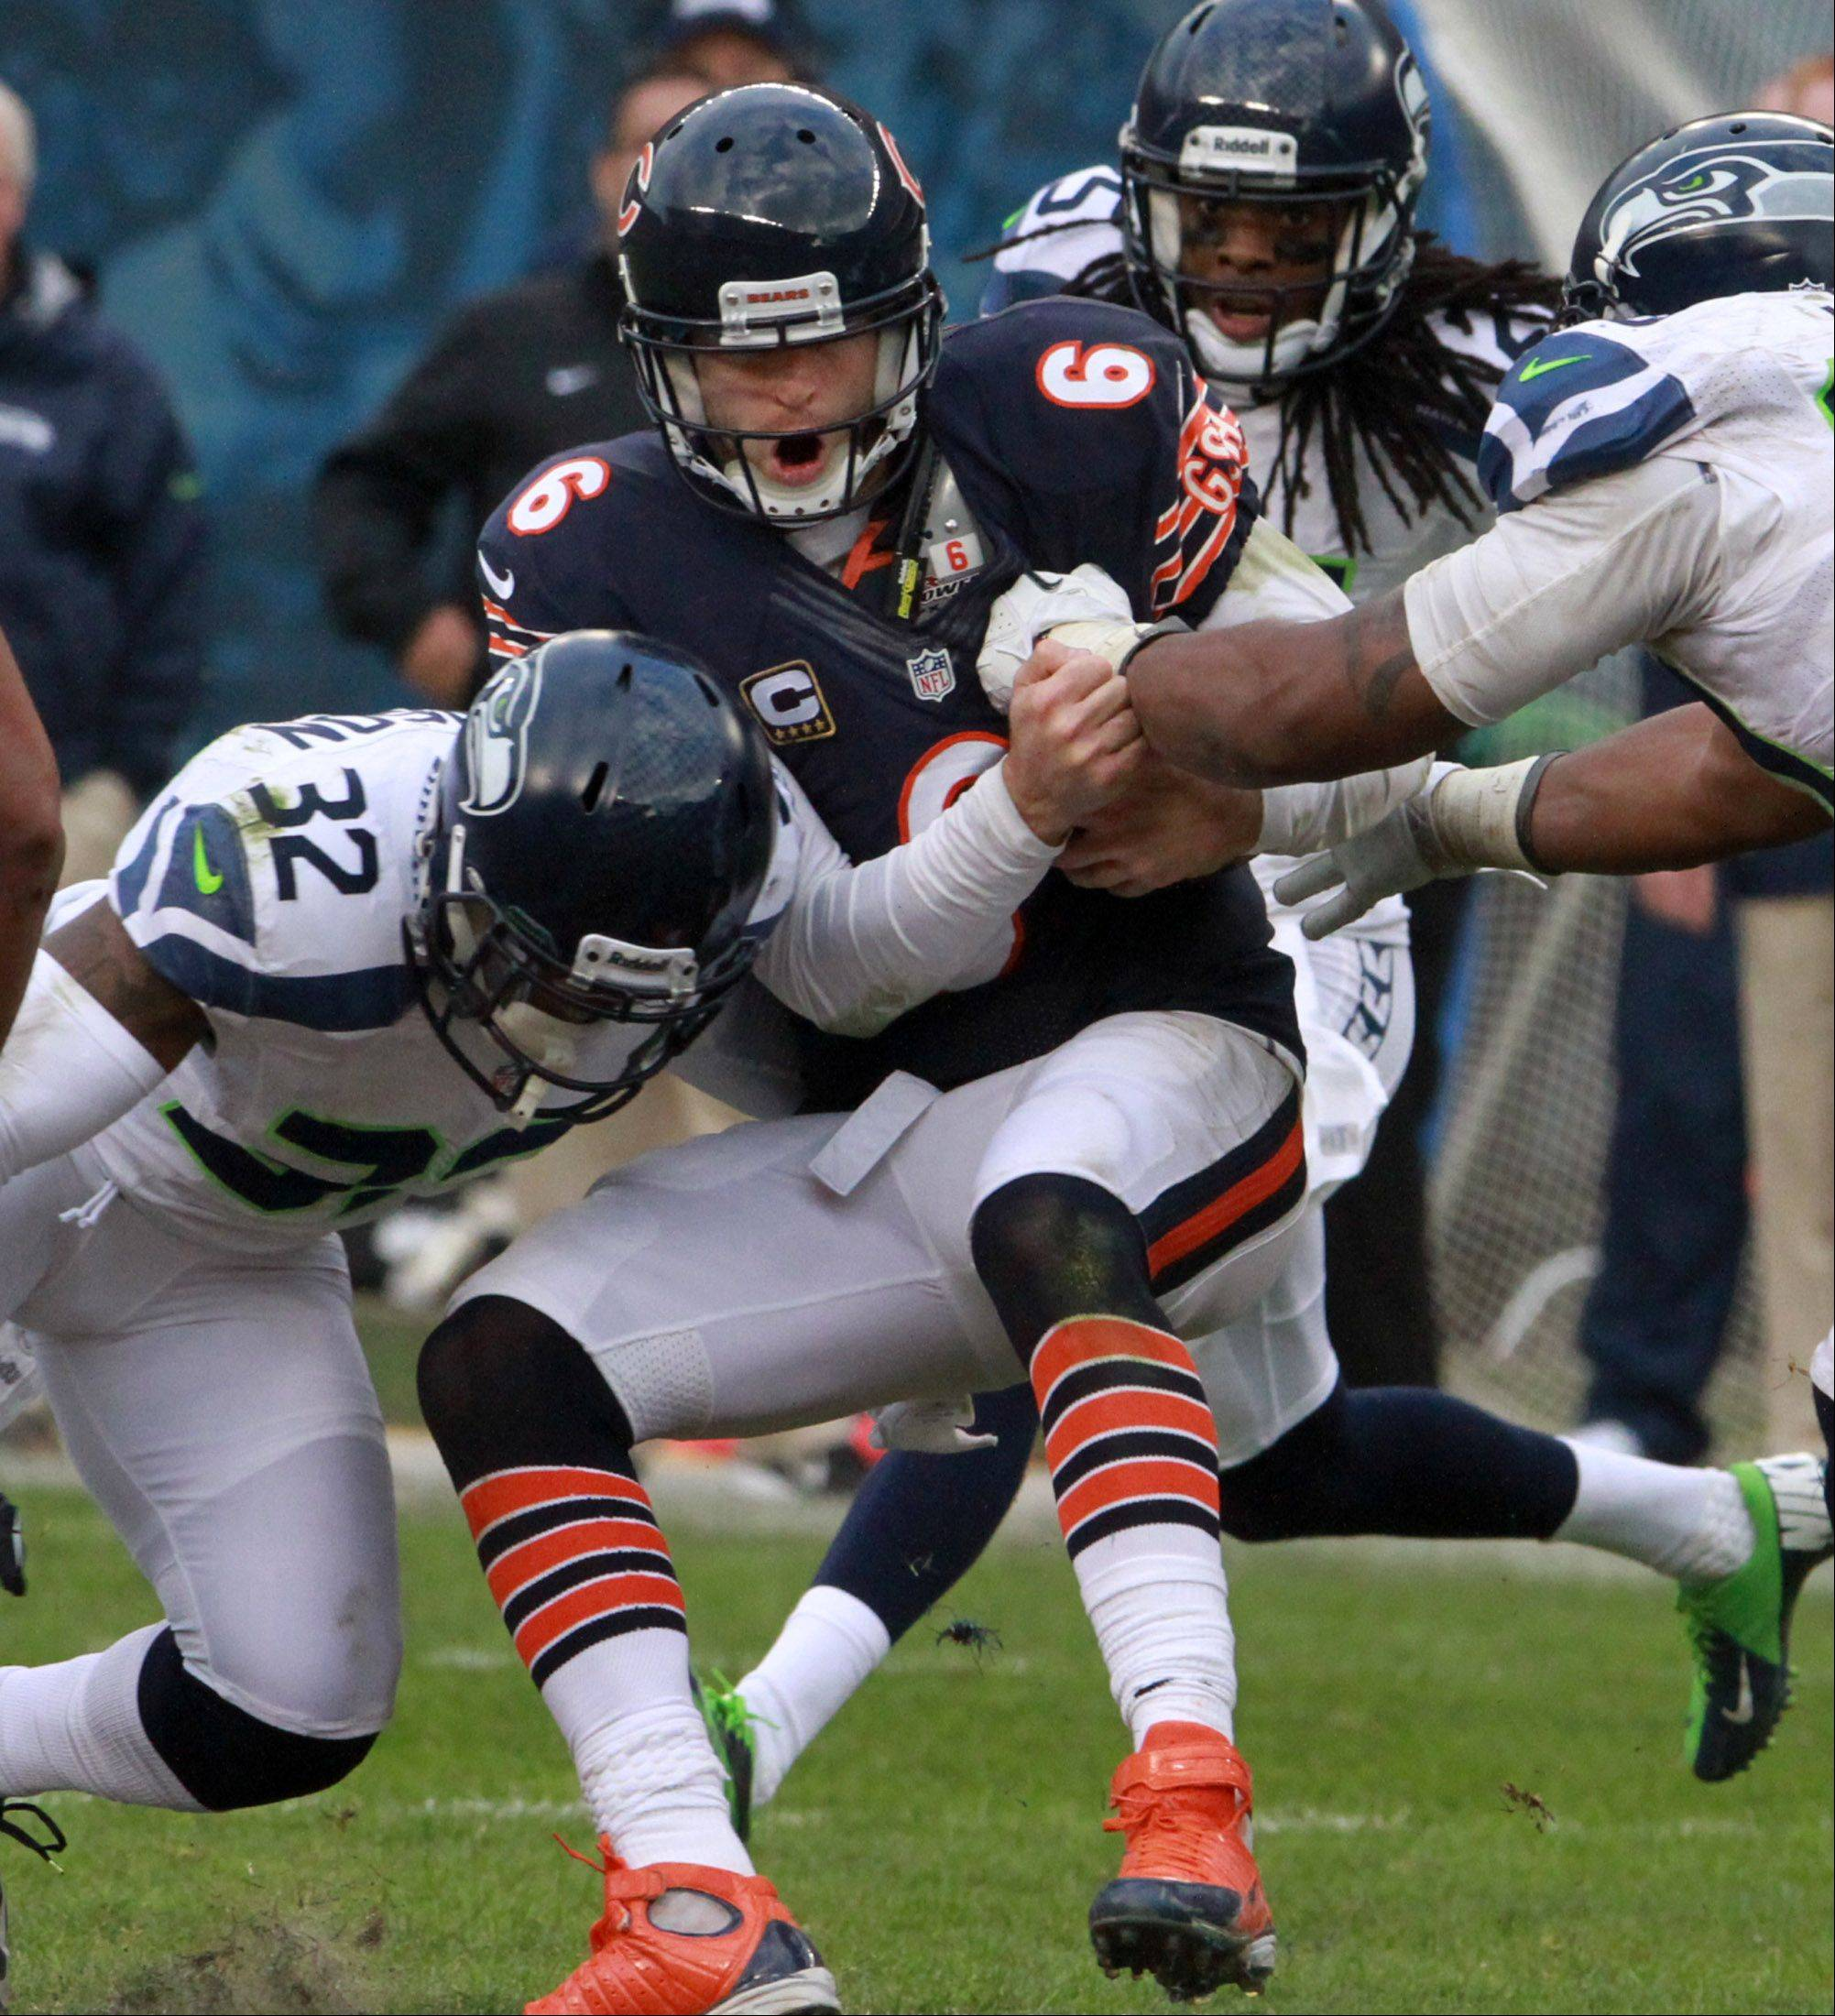 Bears quarterback Jay Cutler is hit by Seattle Seahawks strong safety Jeron Johnson during a loss at Soldier Field in early December.